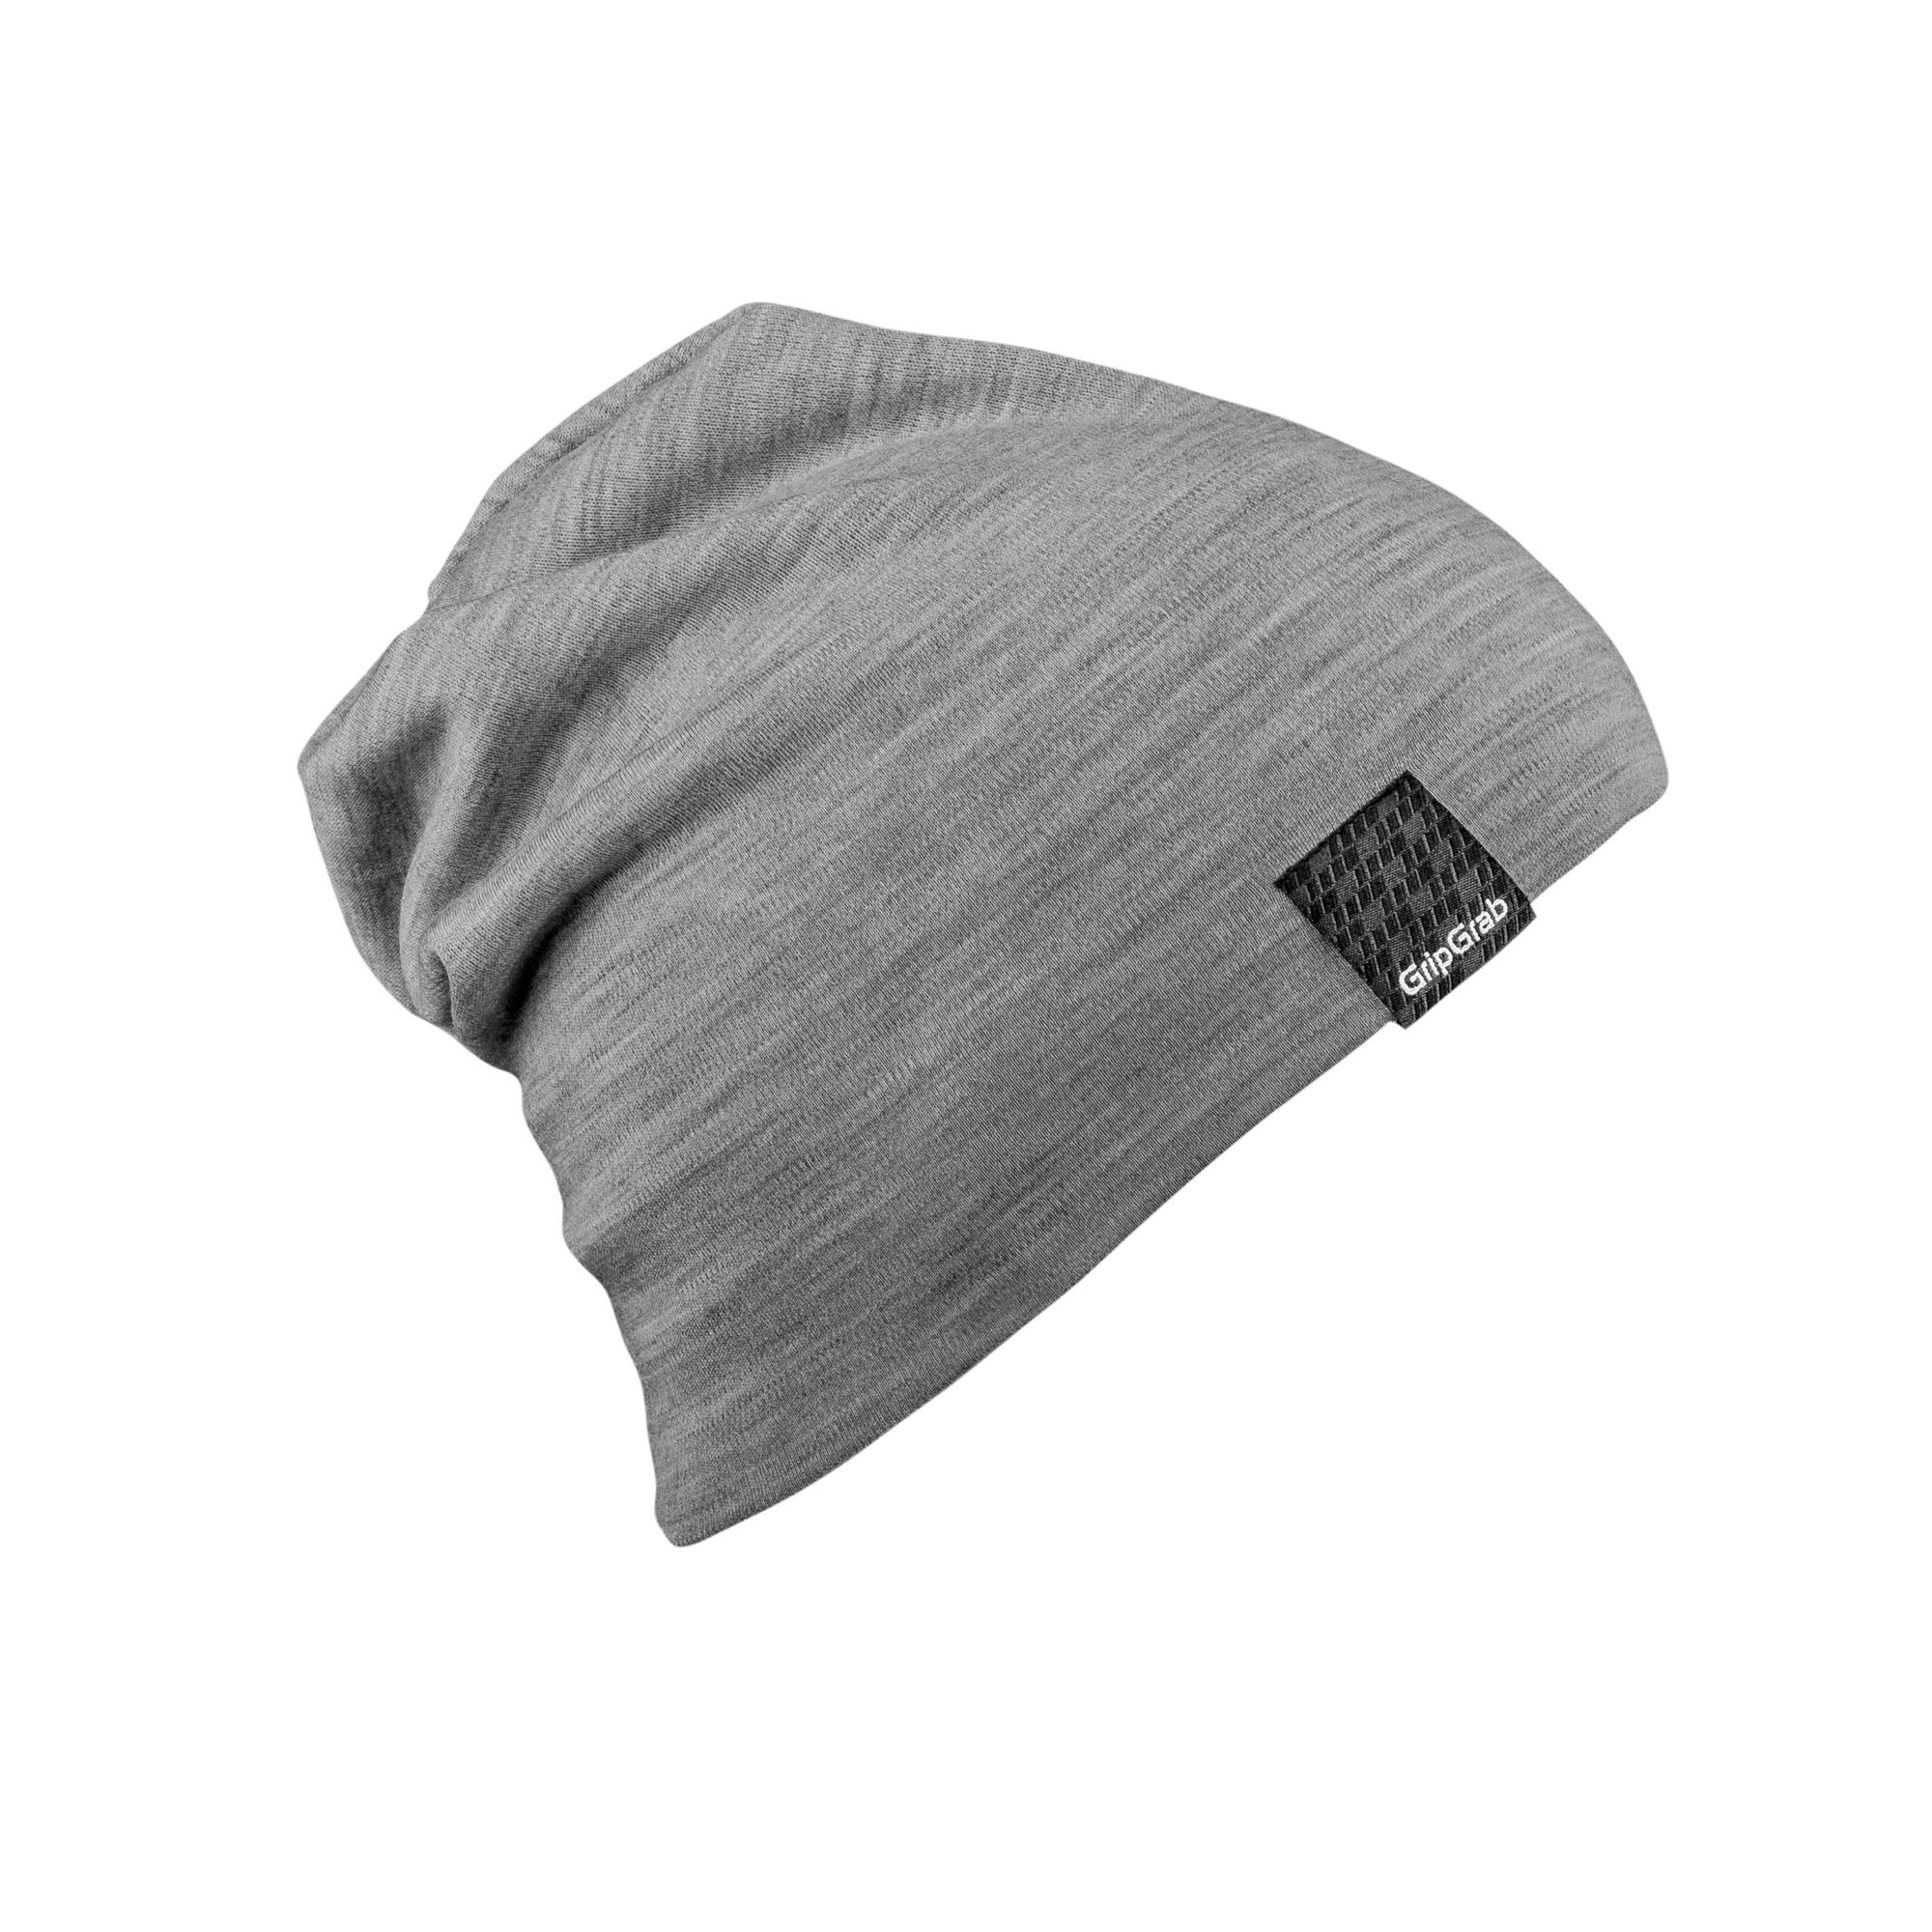 Afbeelding GripGrab Casual Muts Unisex Grijs - Midweight Merino Beanie Grey